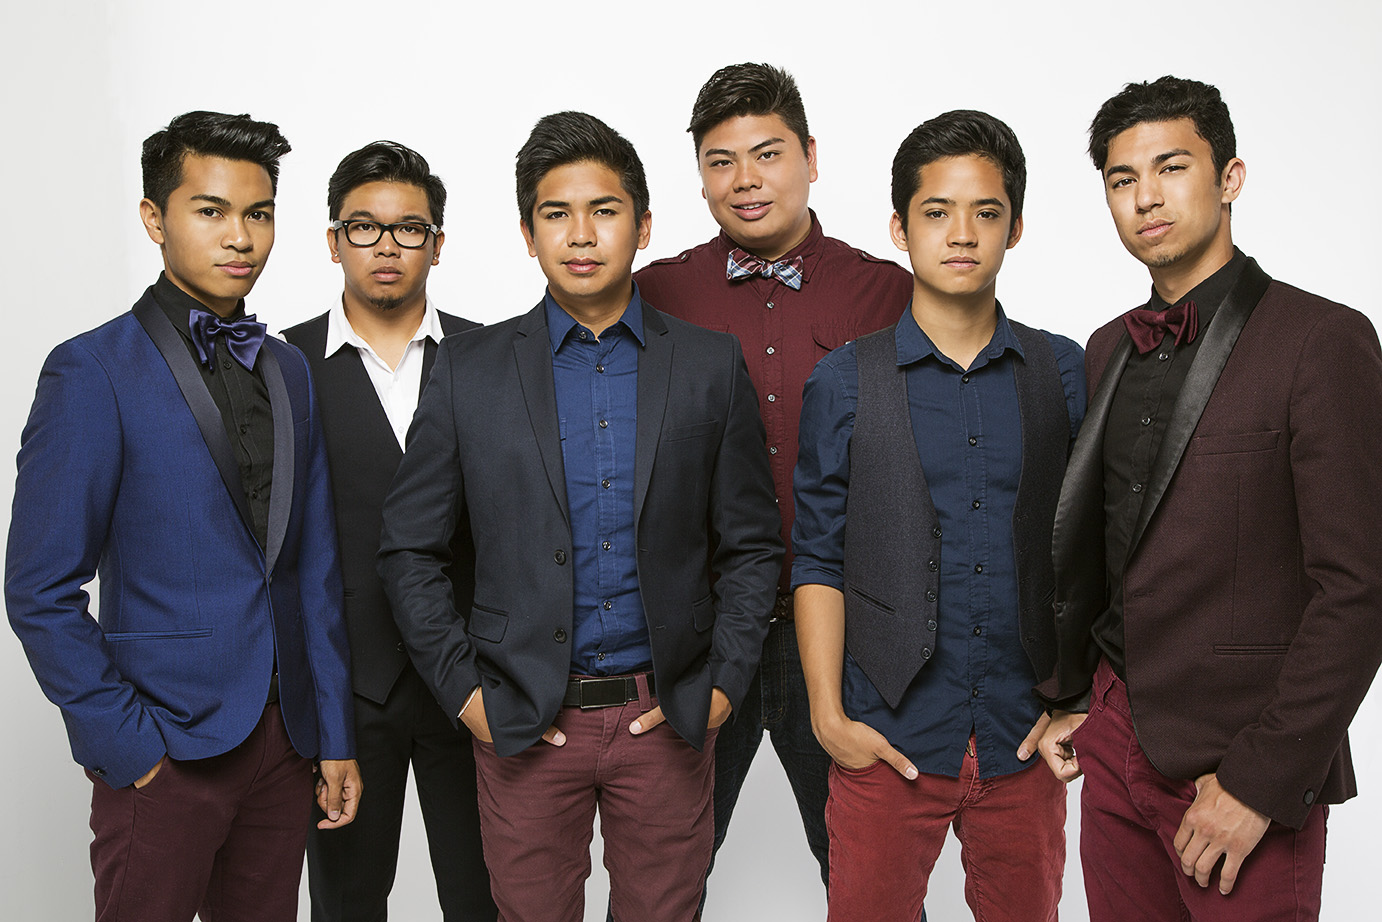 """The Filharmonic, a boy band unique in their musical talent and cultural diversity.The group of Filipino-American youngsters who were featured in NBC's hit musical competition, """"The Sing-Off"""", has much to sing about. Making the semi-finals, finishing the first """"Sing-Off"""" National tour, sharing the stage with The Black Eyed Peas and Pentatonix, then being part of the movie Pitch Perfect 2 is only the kick-off to their amazing journey!They consist of six members: Vocalists VJ Rosales, Joe Caigoy, Trace Gaynor, and Barry Fortgang, Vocal Bass Jules Cruz, and Beat boxer Niko Del Rey.Their melodic vocal style exemplifies an urbanesque hip hop sound with 90's nostalgia."""